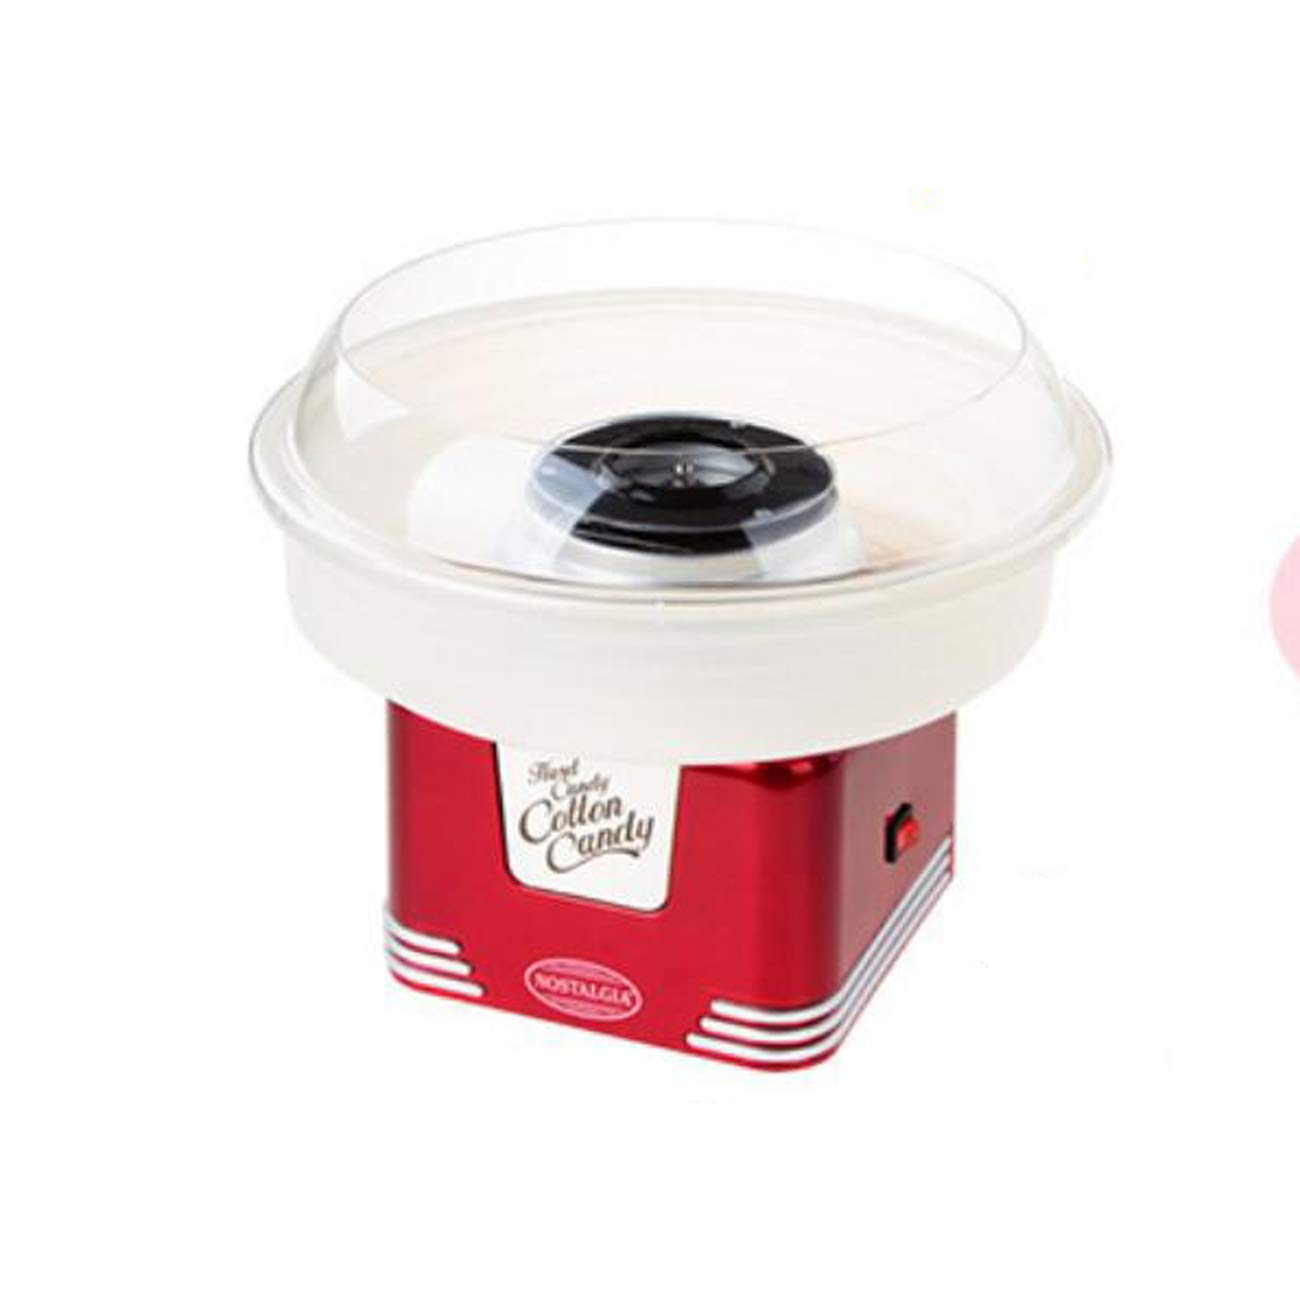 Isa Handy Candy Smart Cotton Candy Maker, Pink/Red,Red